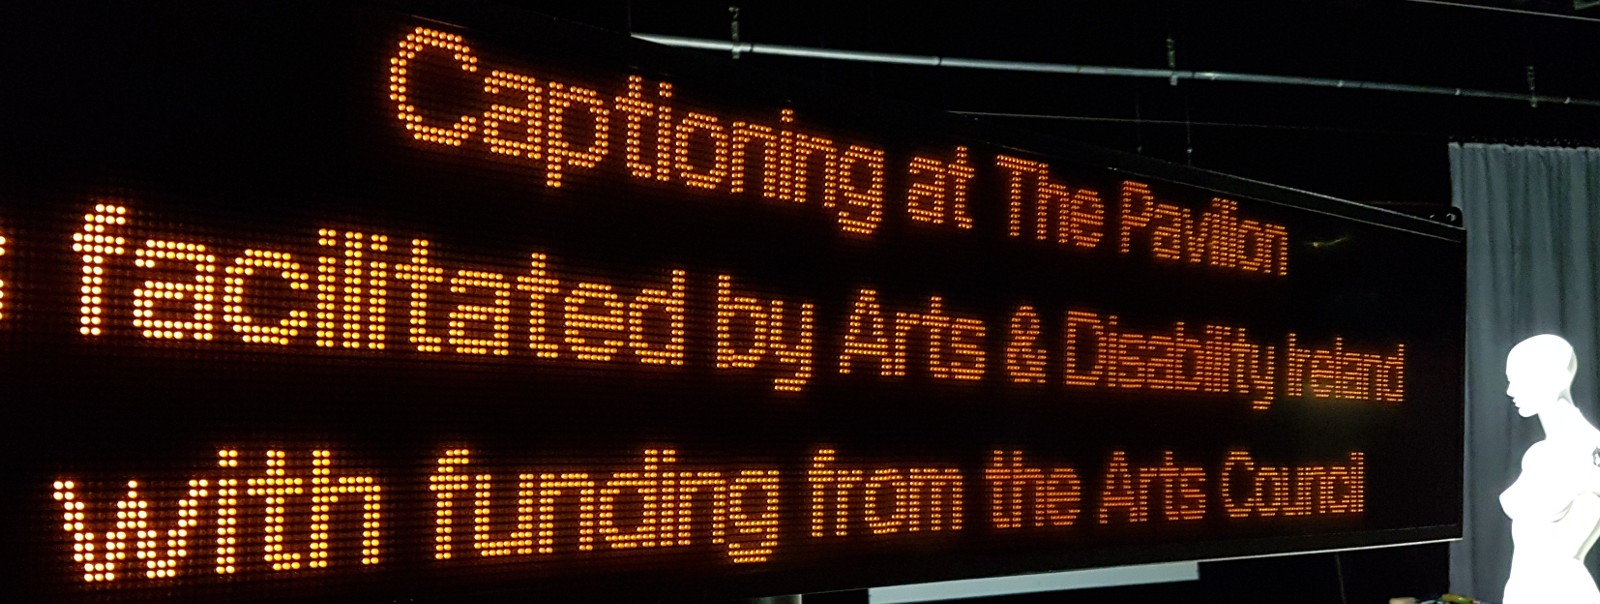 A captioning unit displaying text in orange LED lights. The text reads: Captioning at The Pavilion Theatre is facilitated by Arts & Disability Ireland with funding from the Arts Council.